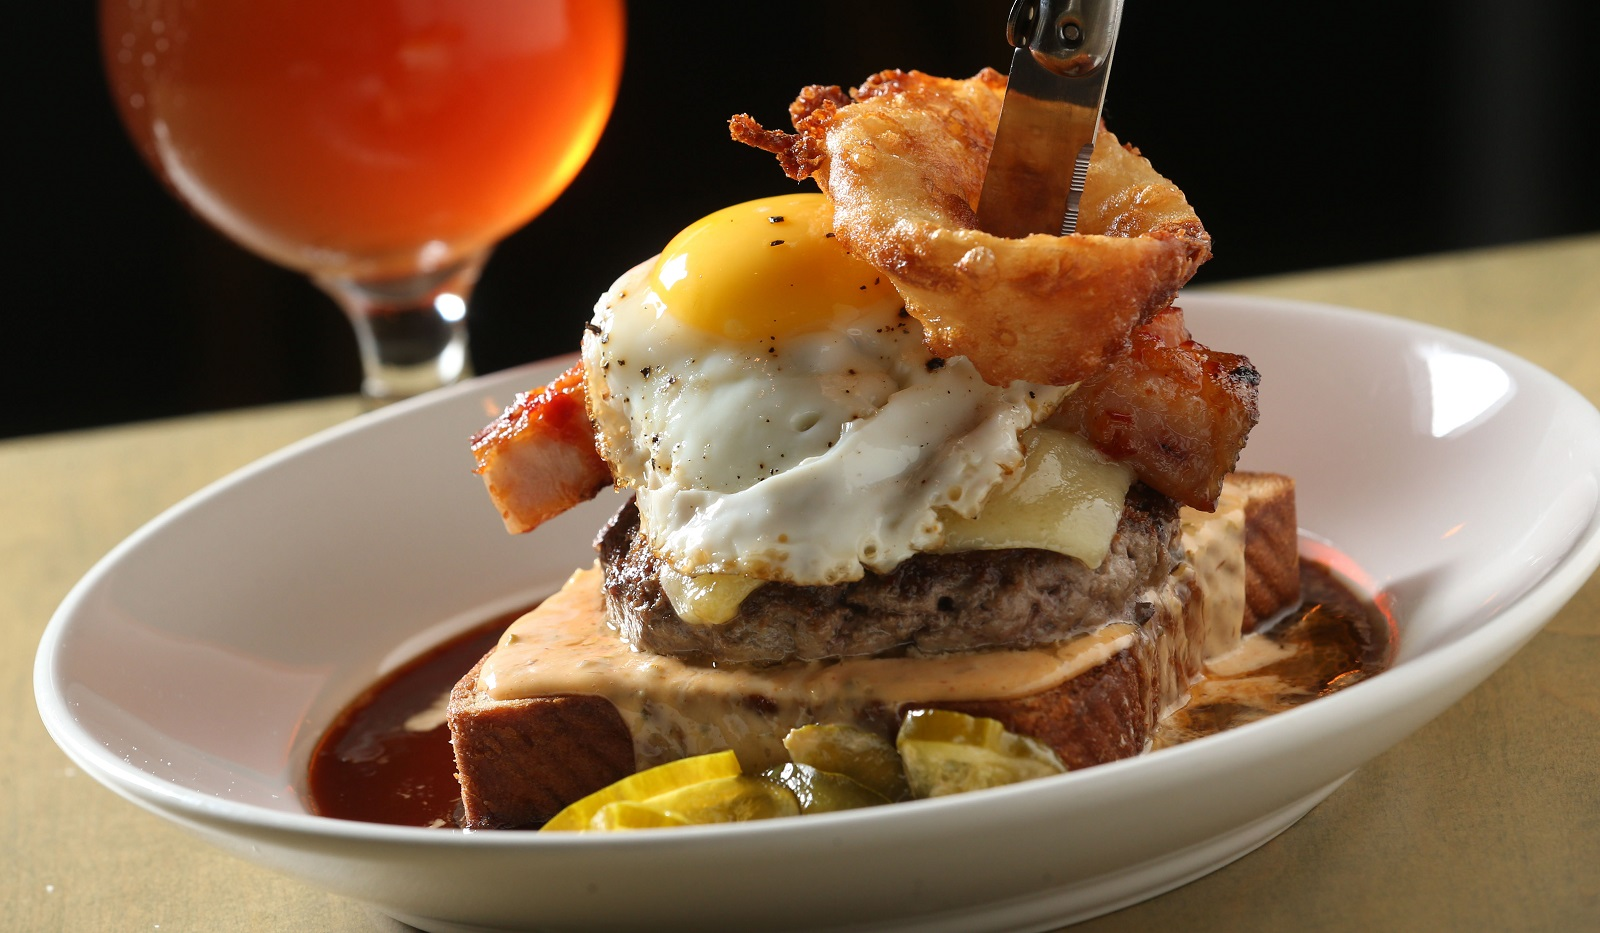 The Tokyo Burger from Thin Man Brewery is a meal for an adventurous and hungry eater. (Sharon Cantillon/Buffalo News)